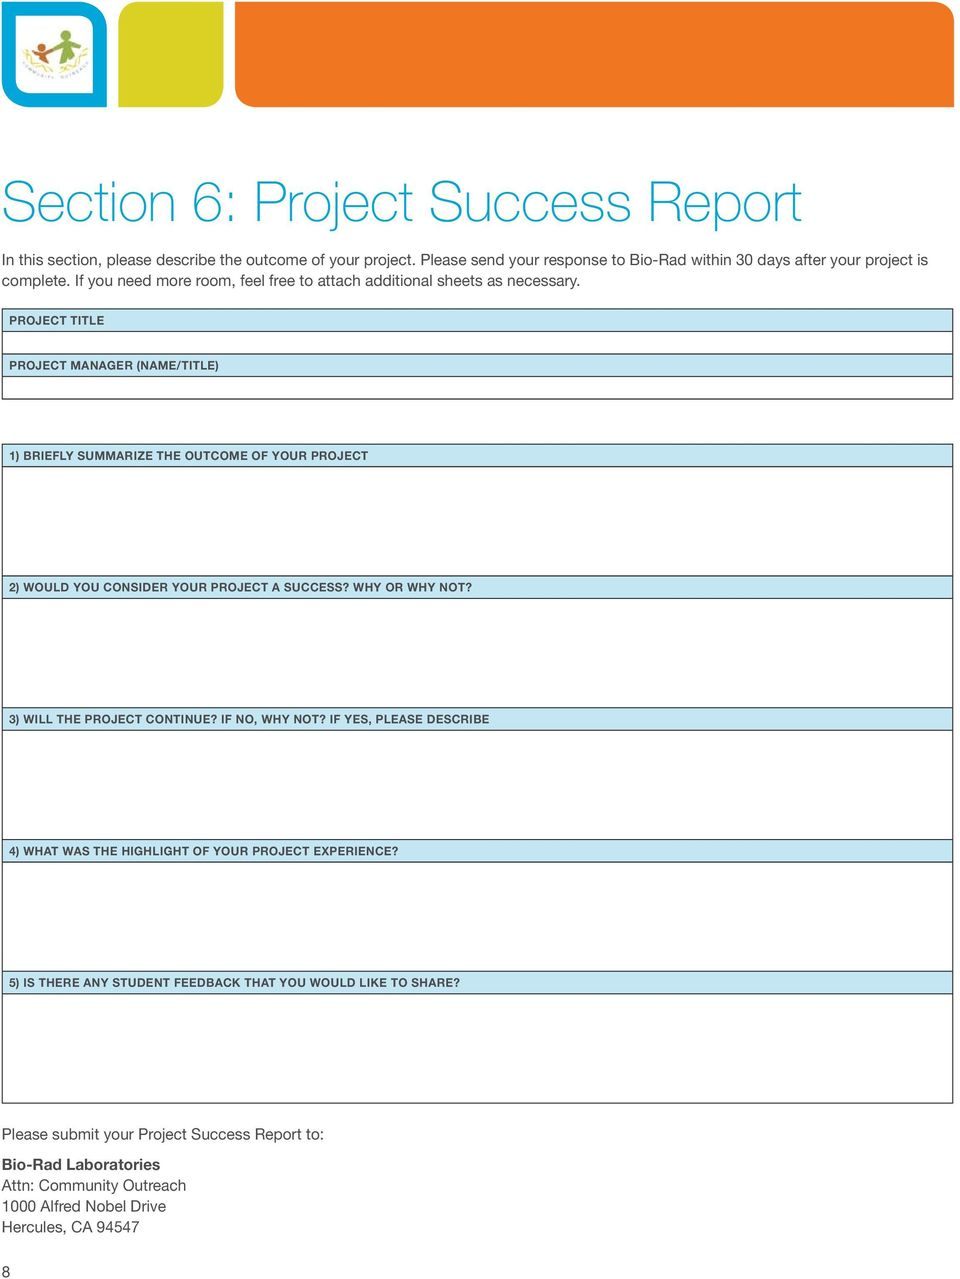 PROJECT TITLE PROJECT MANAGER (NAME/TITLE) 1) BRIEFLY SUMMARIZE THE OUTCOME OF YOUR PROJECT 2) WOULD YOU CONSIDER YOUR PROJECT A SUCCESS? WHY OR WHY NOT? 3) WILL THE PROJECT CONTINUE?